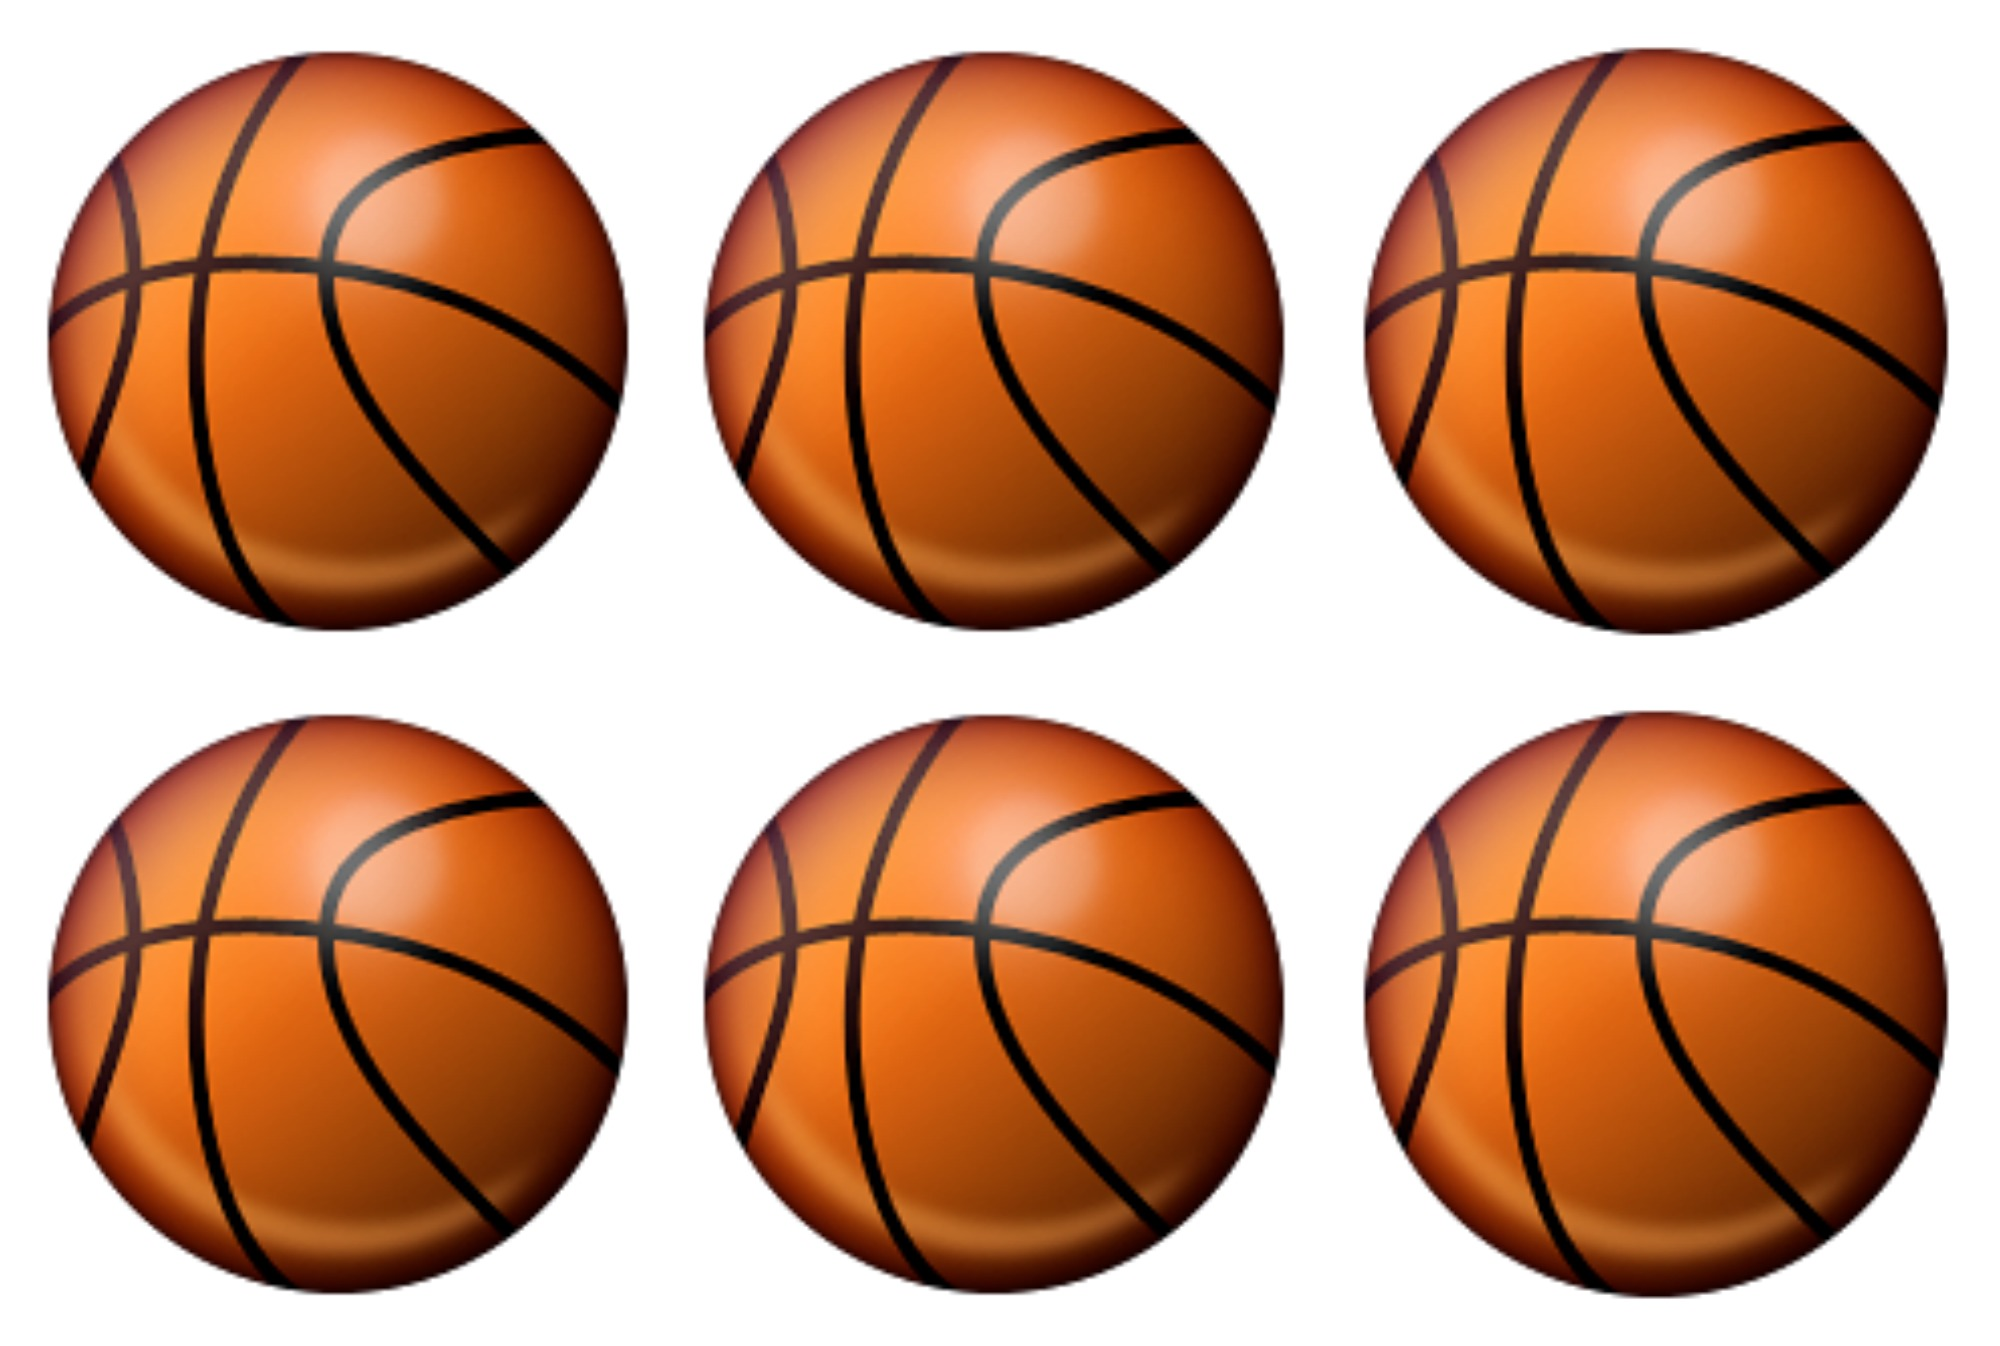 Basketball Emoji Png (106+ images in Collection) Page 3.